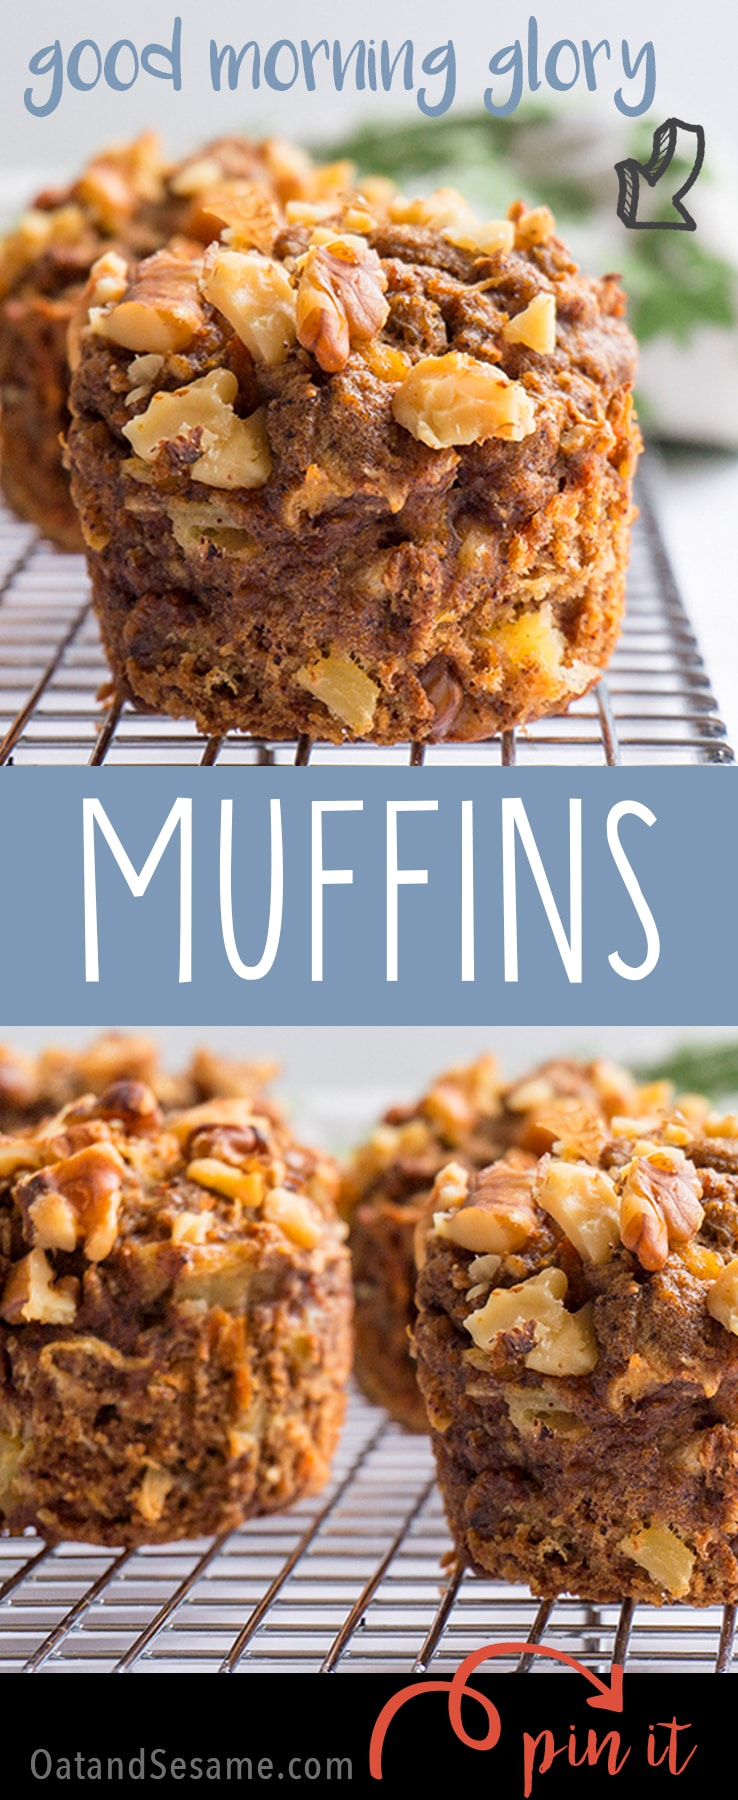 Good Morning Glory! These Healthy Morning Glory Muffins are packed with fruits and veggies! | #MUFFINS | #BREAKFAST | #HEALTHY | #BAKING | #Recipes at OatandSesame.com